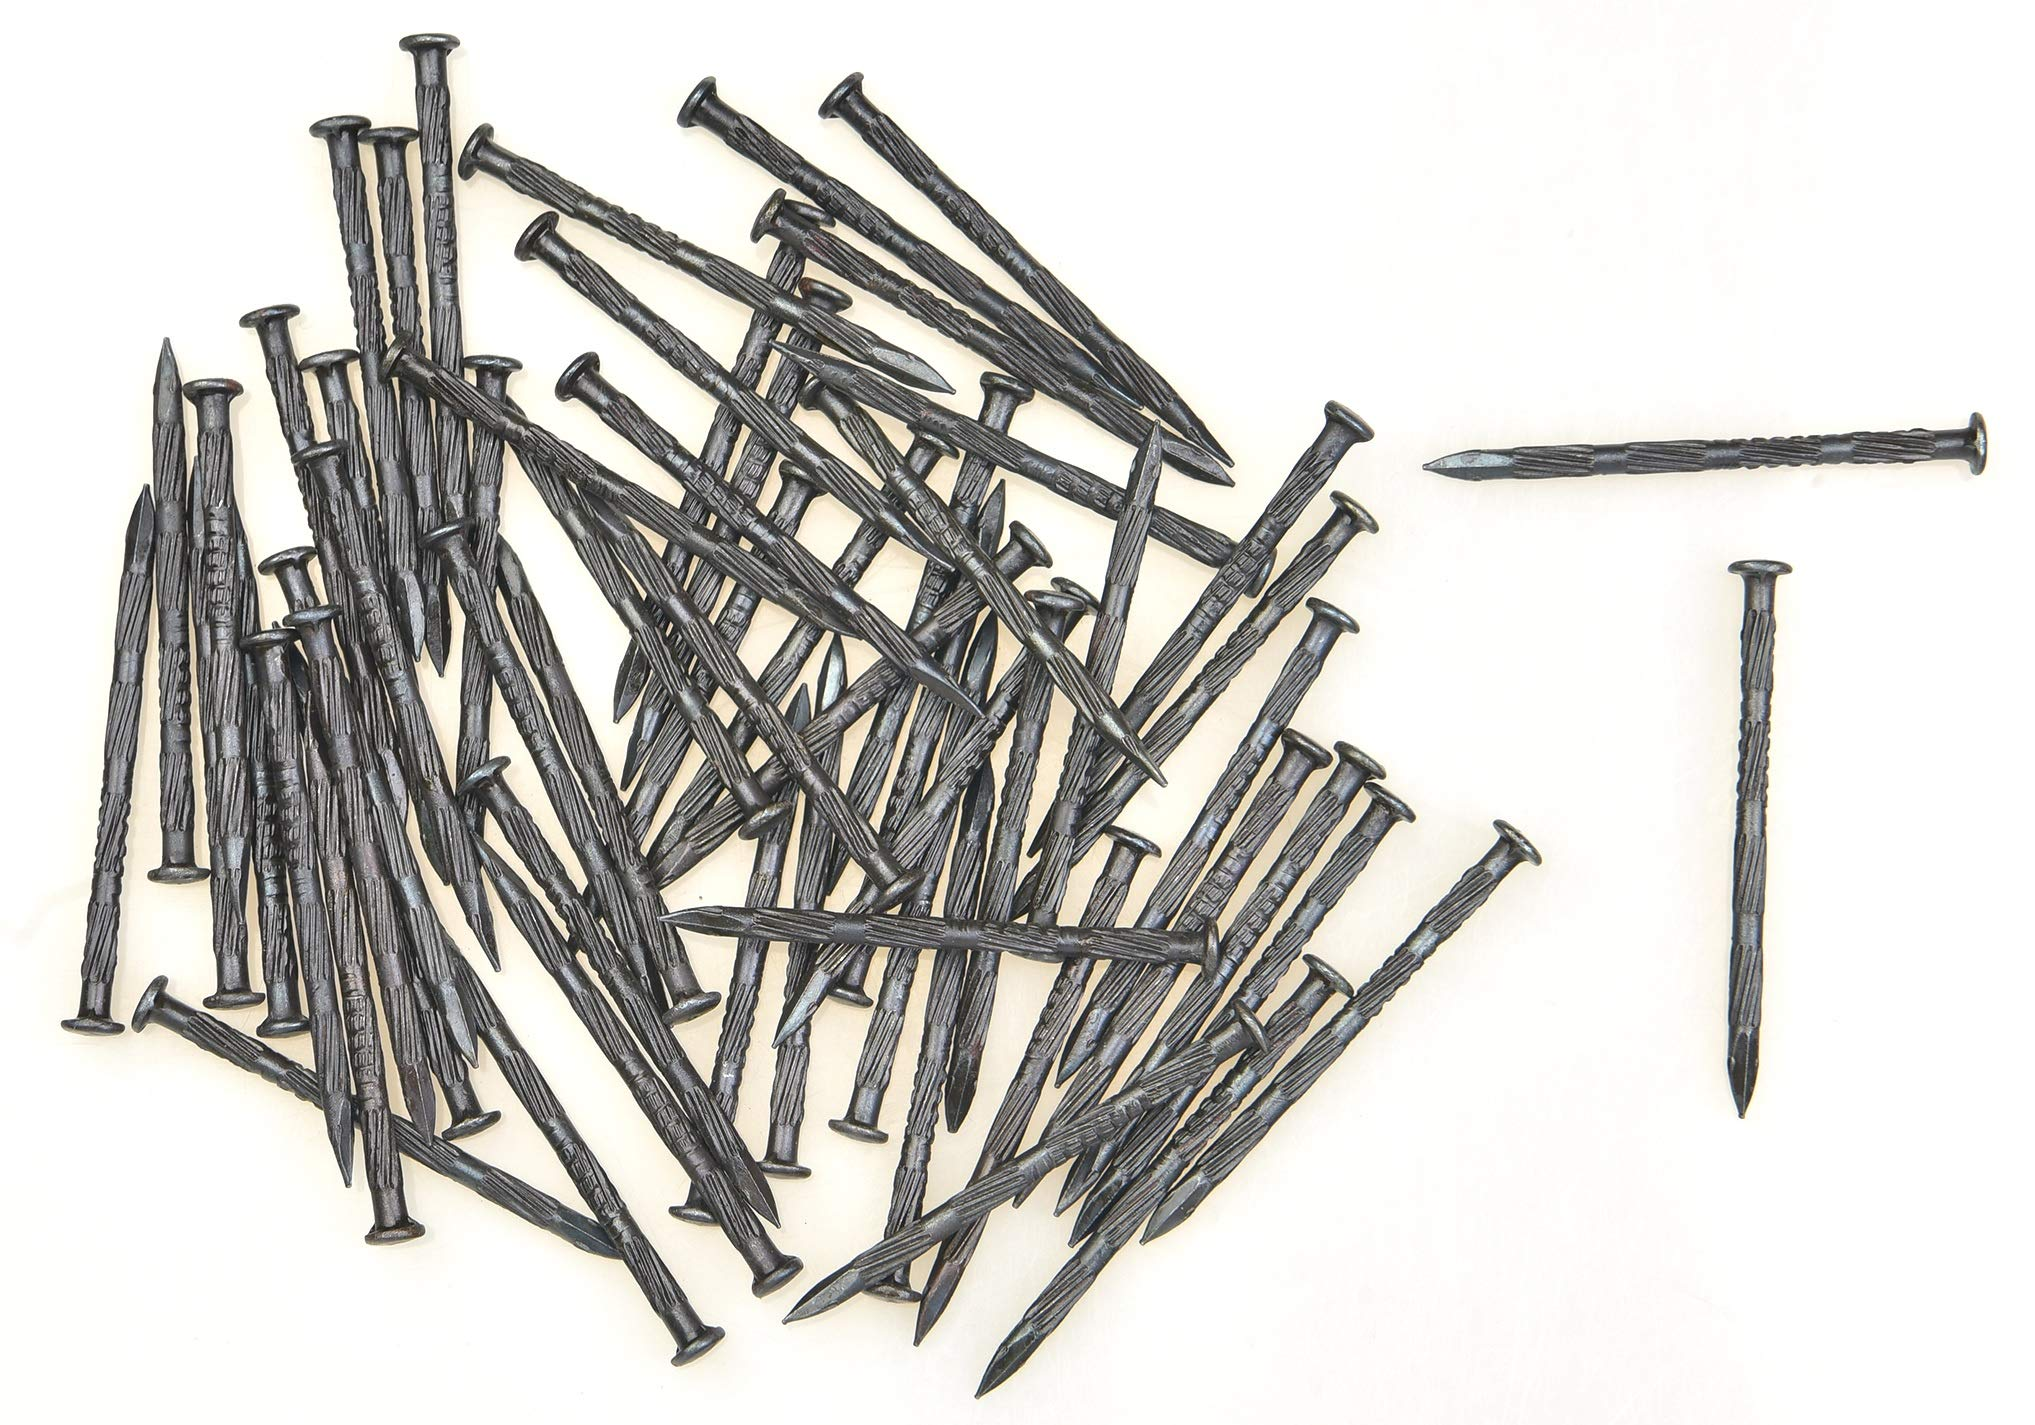 4x70 mm - 2.7 inch Hardened High carbon steel nails for masonry and metal plates 200 pcs (2.71 lb.) by Ozcan Steel Nail